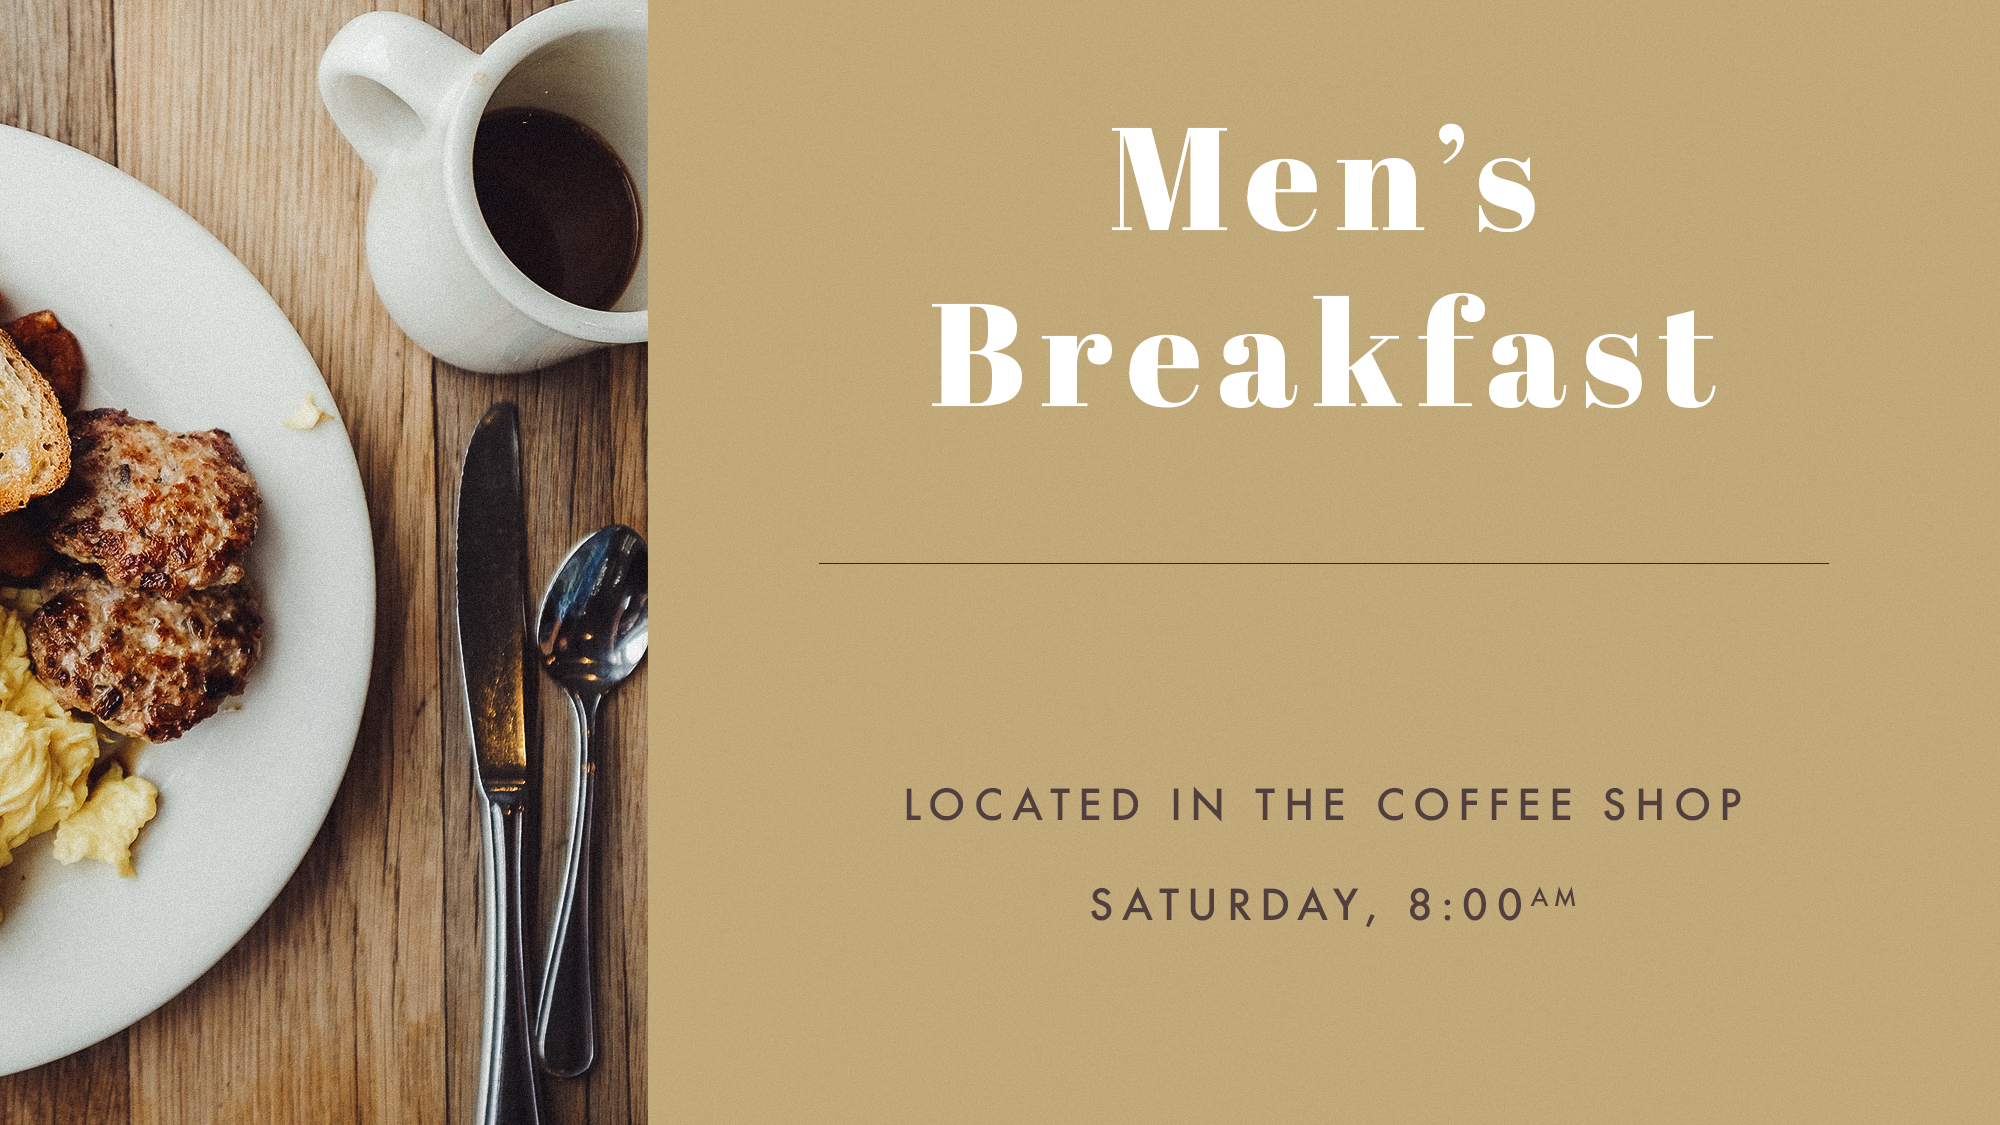 Men's Breakfast meets on the third Saturday of every month at 8am. This is a great time of food and fellowship for guys. Meets in the coffee shop.